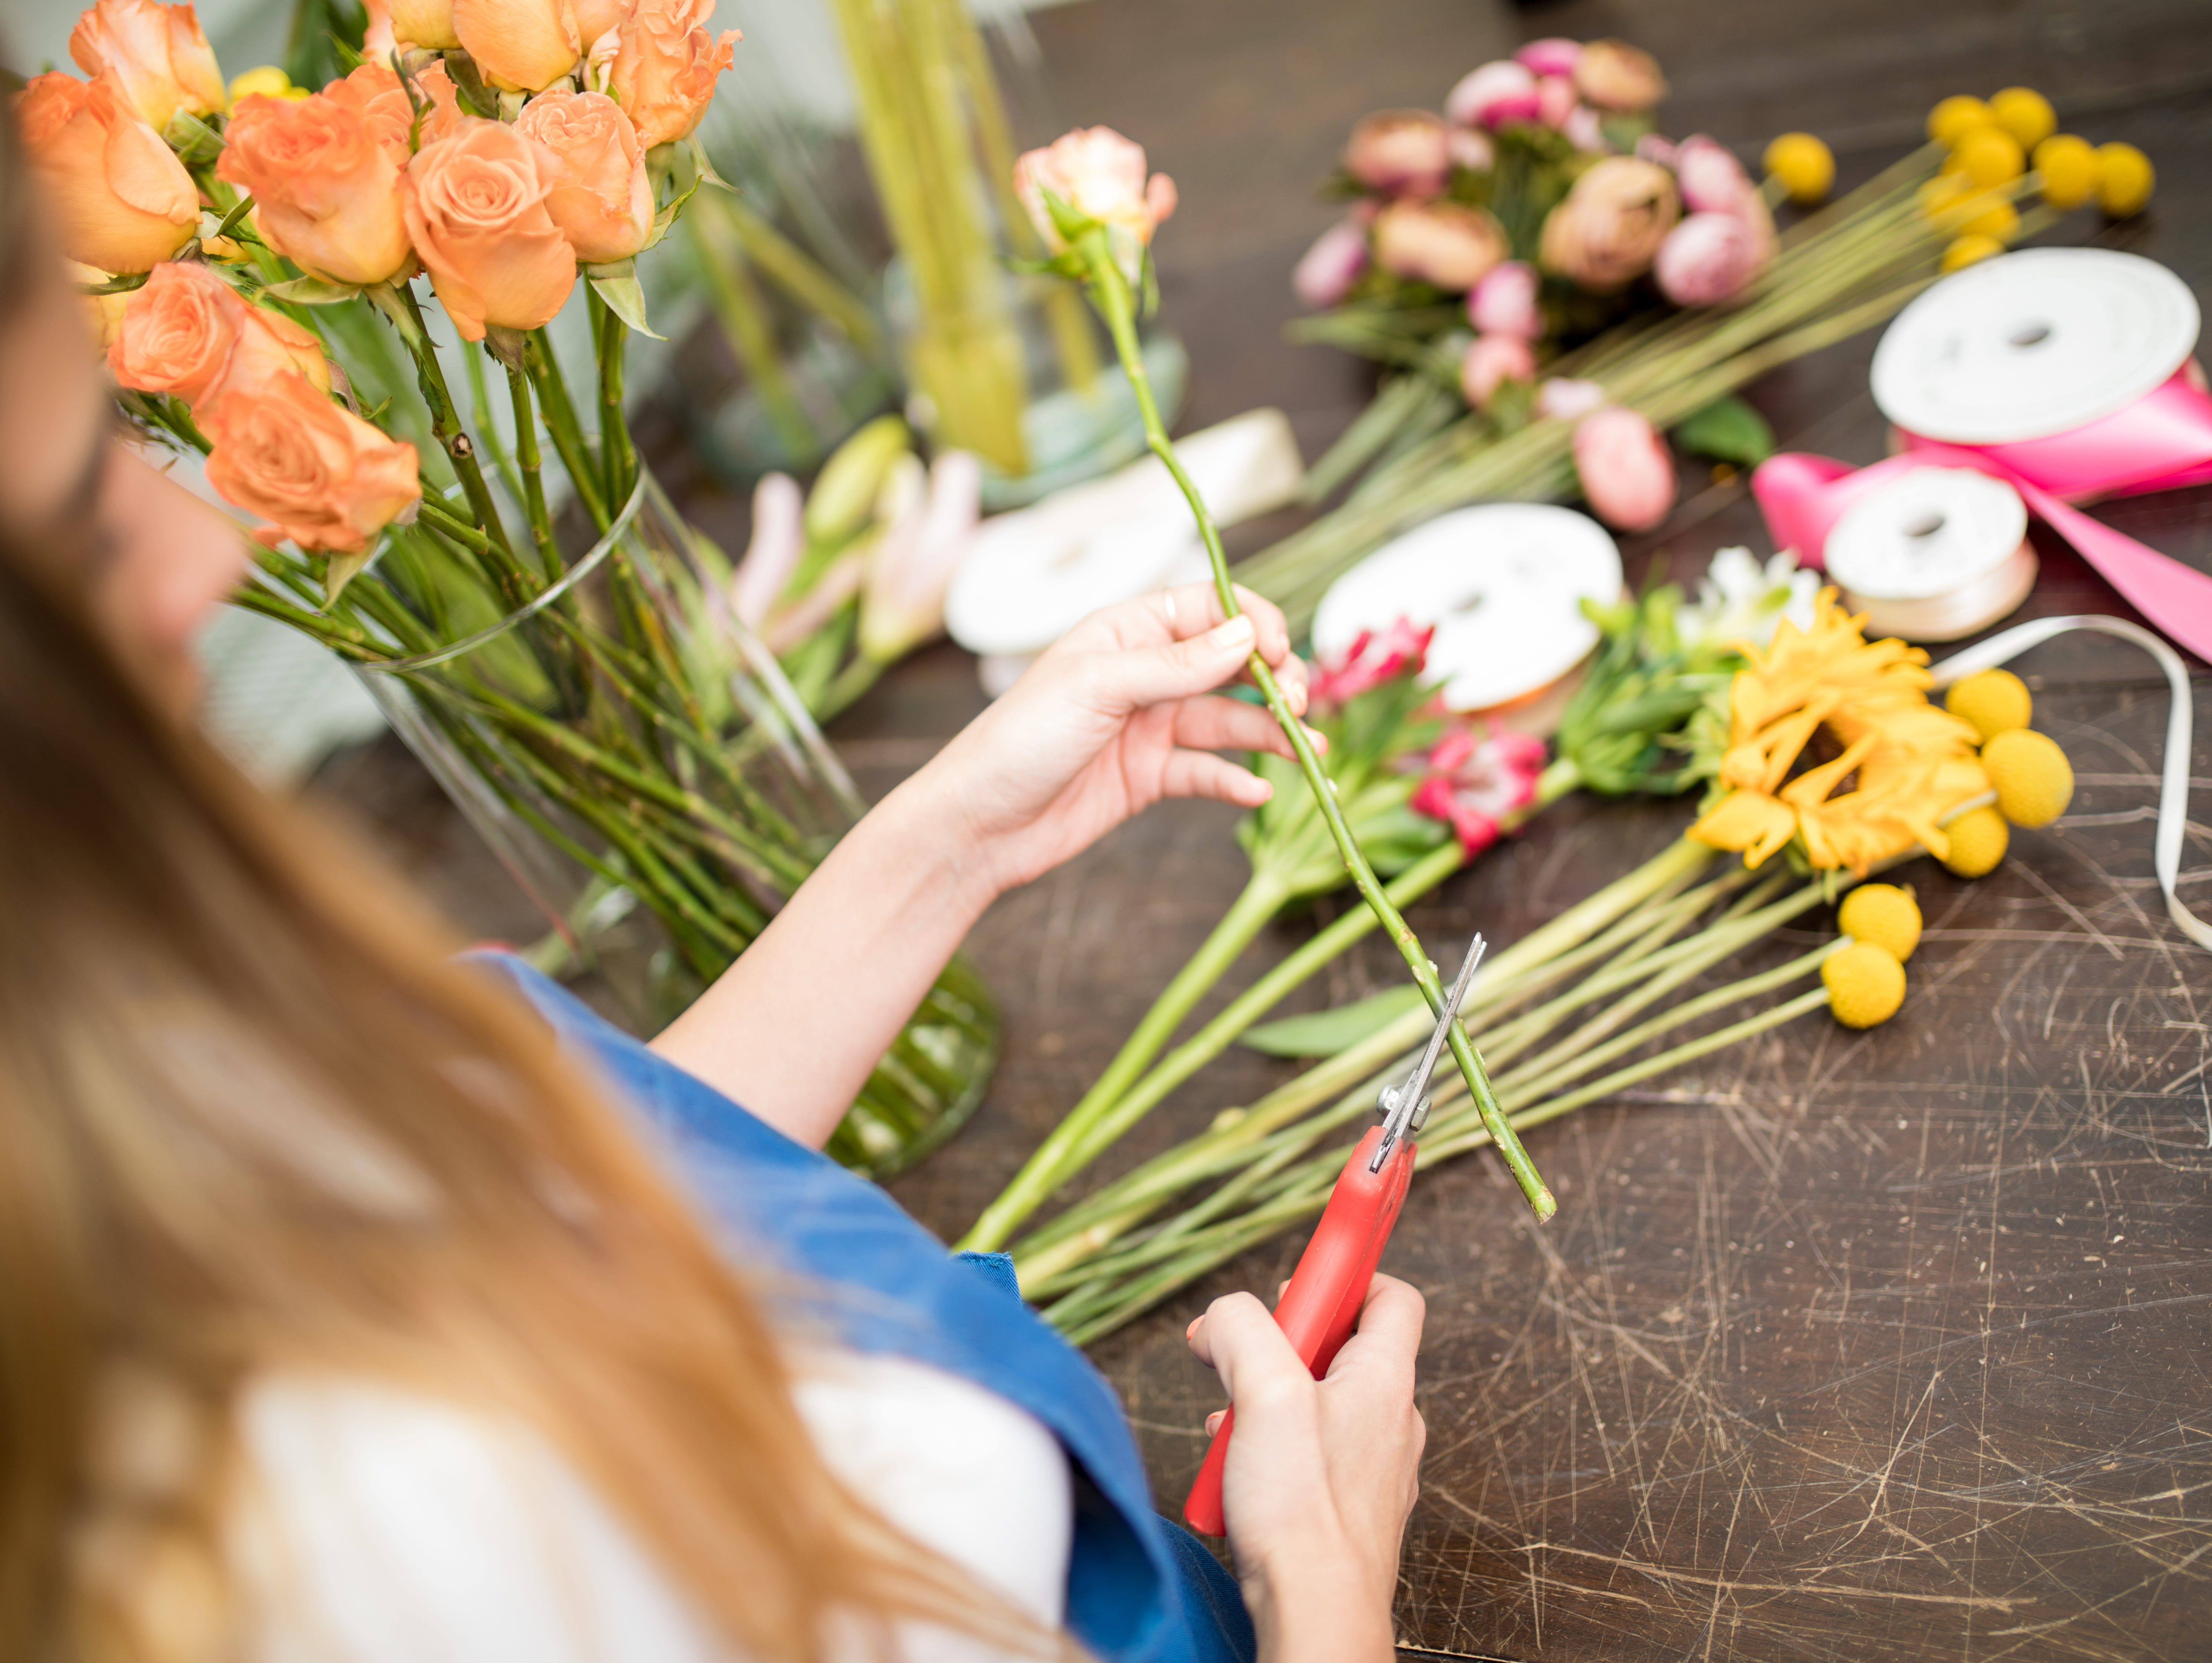 Attend our summer bouquet workshop for a fun & informative class about floral arranging and tips!